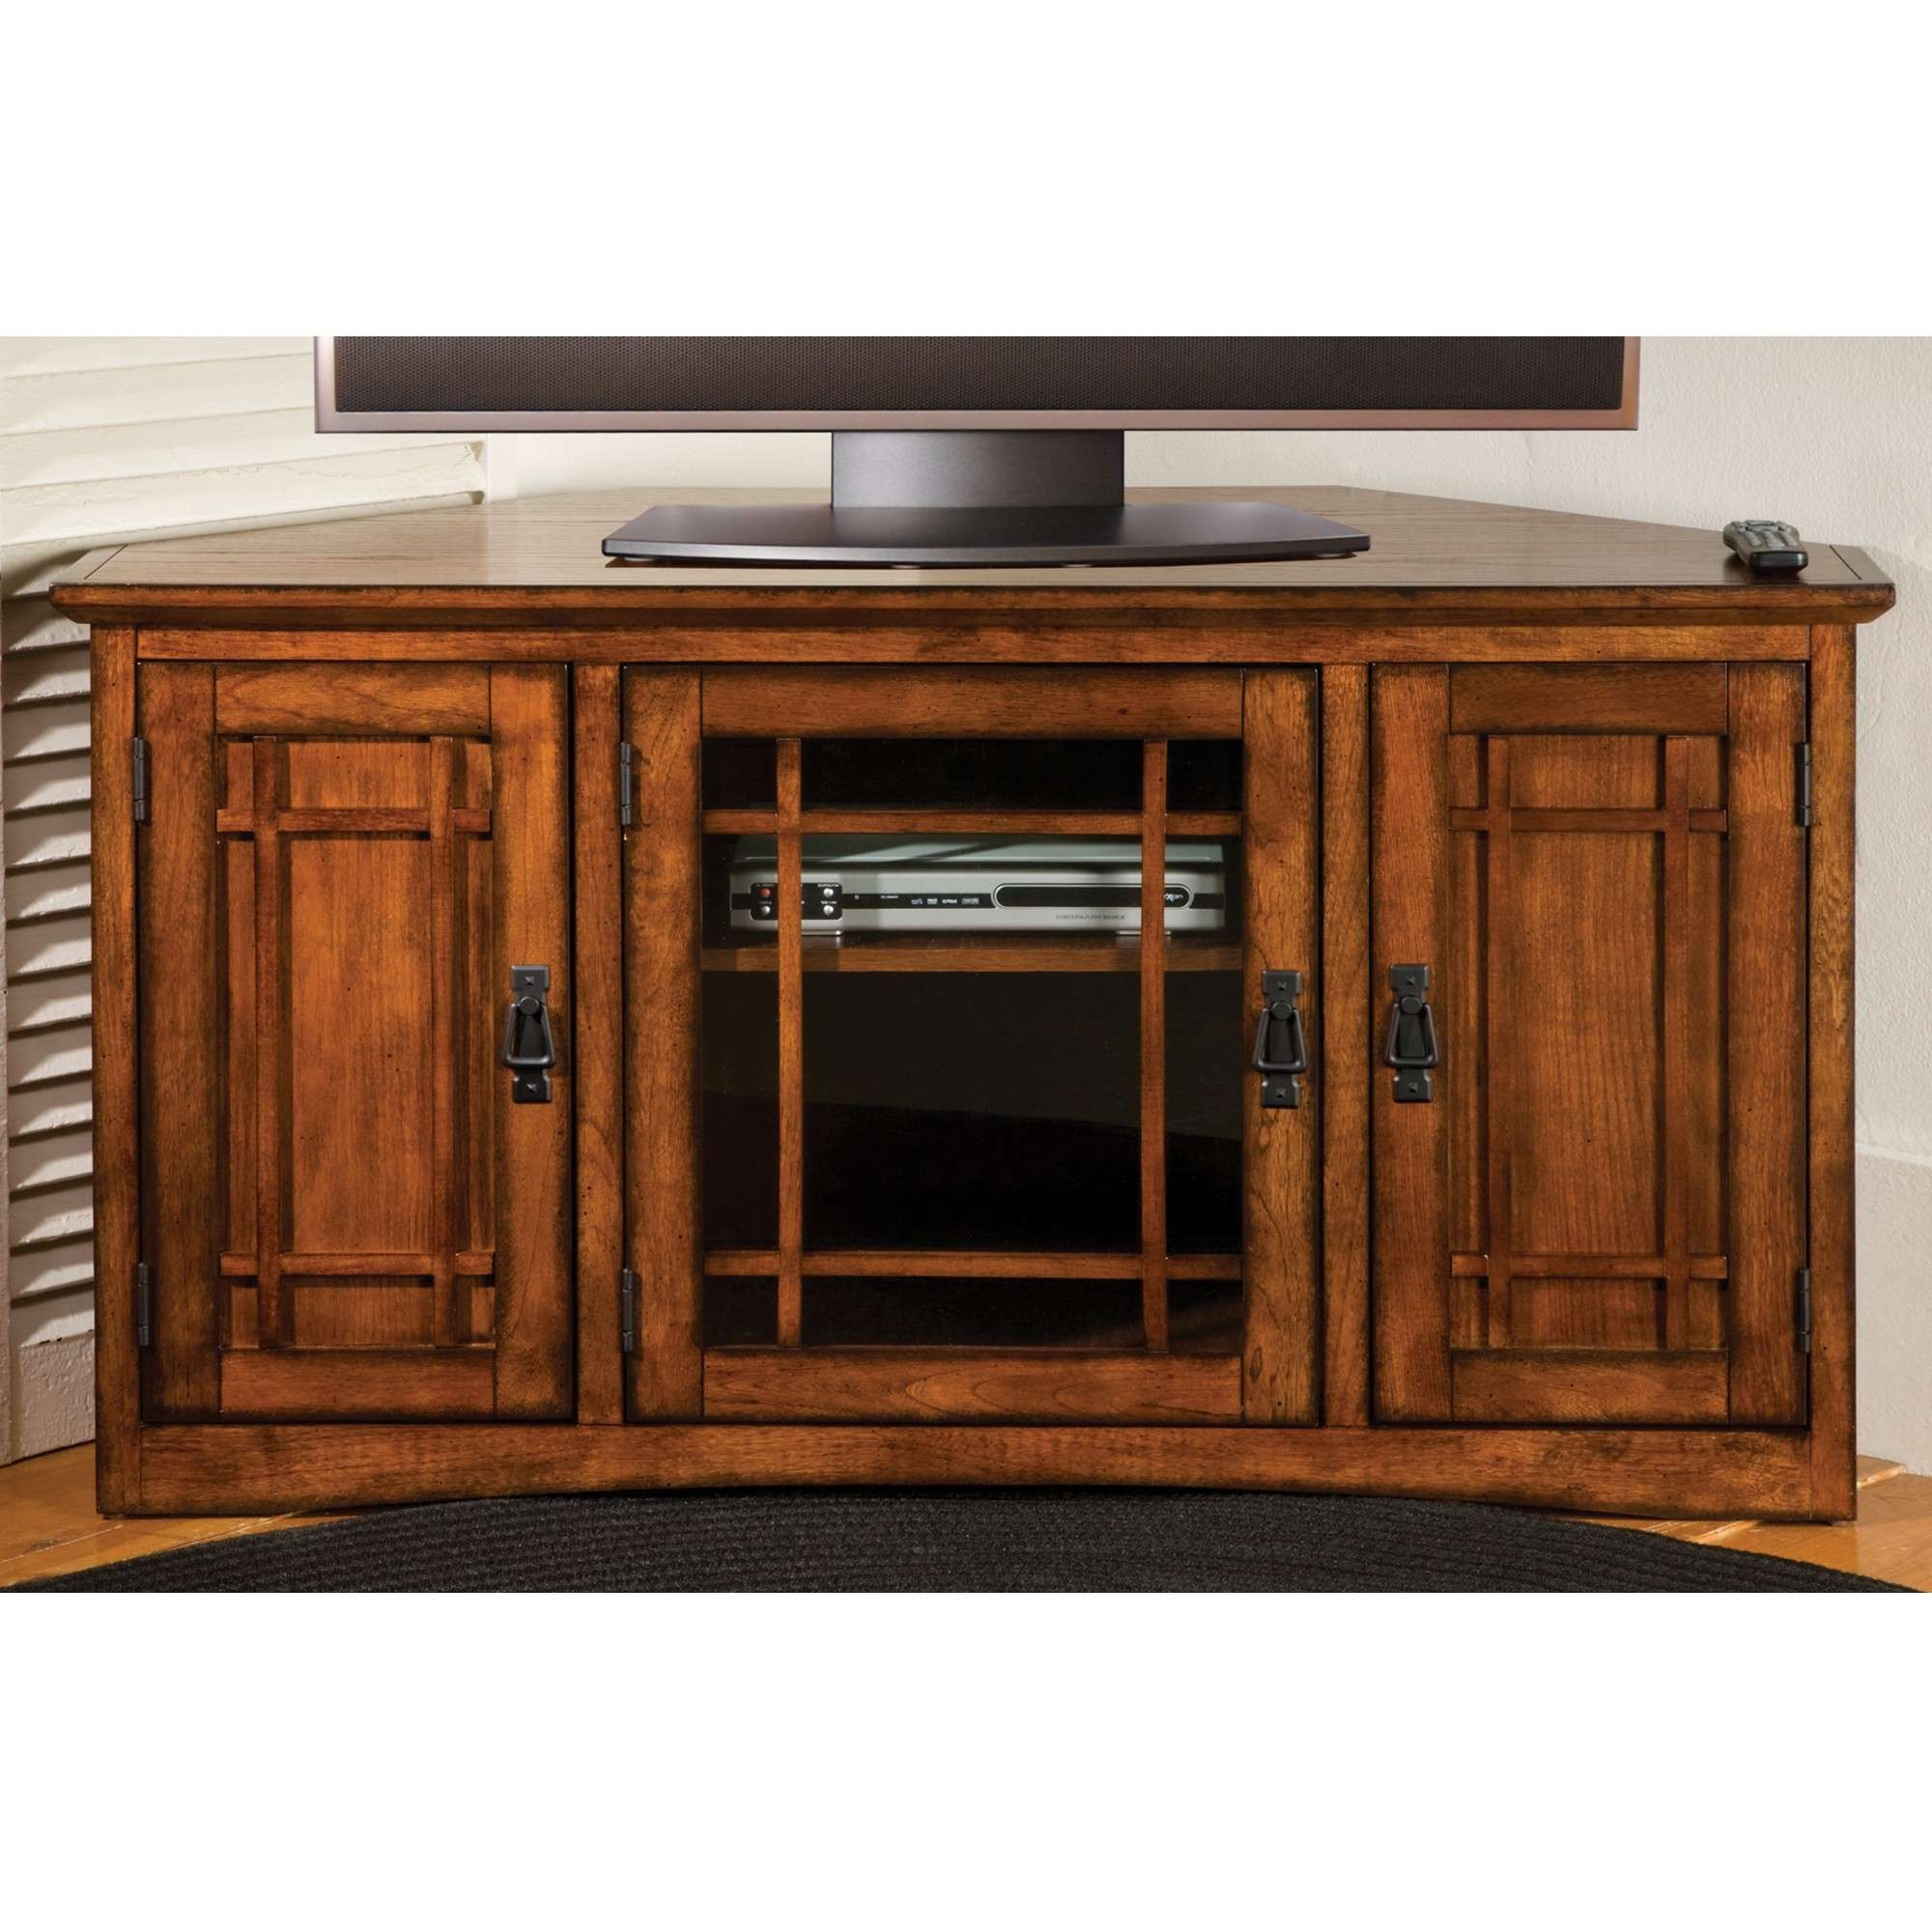 Mission Corner Tv Cabinet | Sturbridge Yankee Workshop In Black Corner Tv Cabinets With Glass Doors (View 10 of 20)